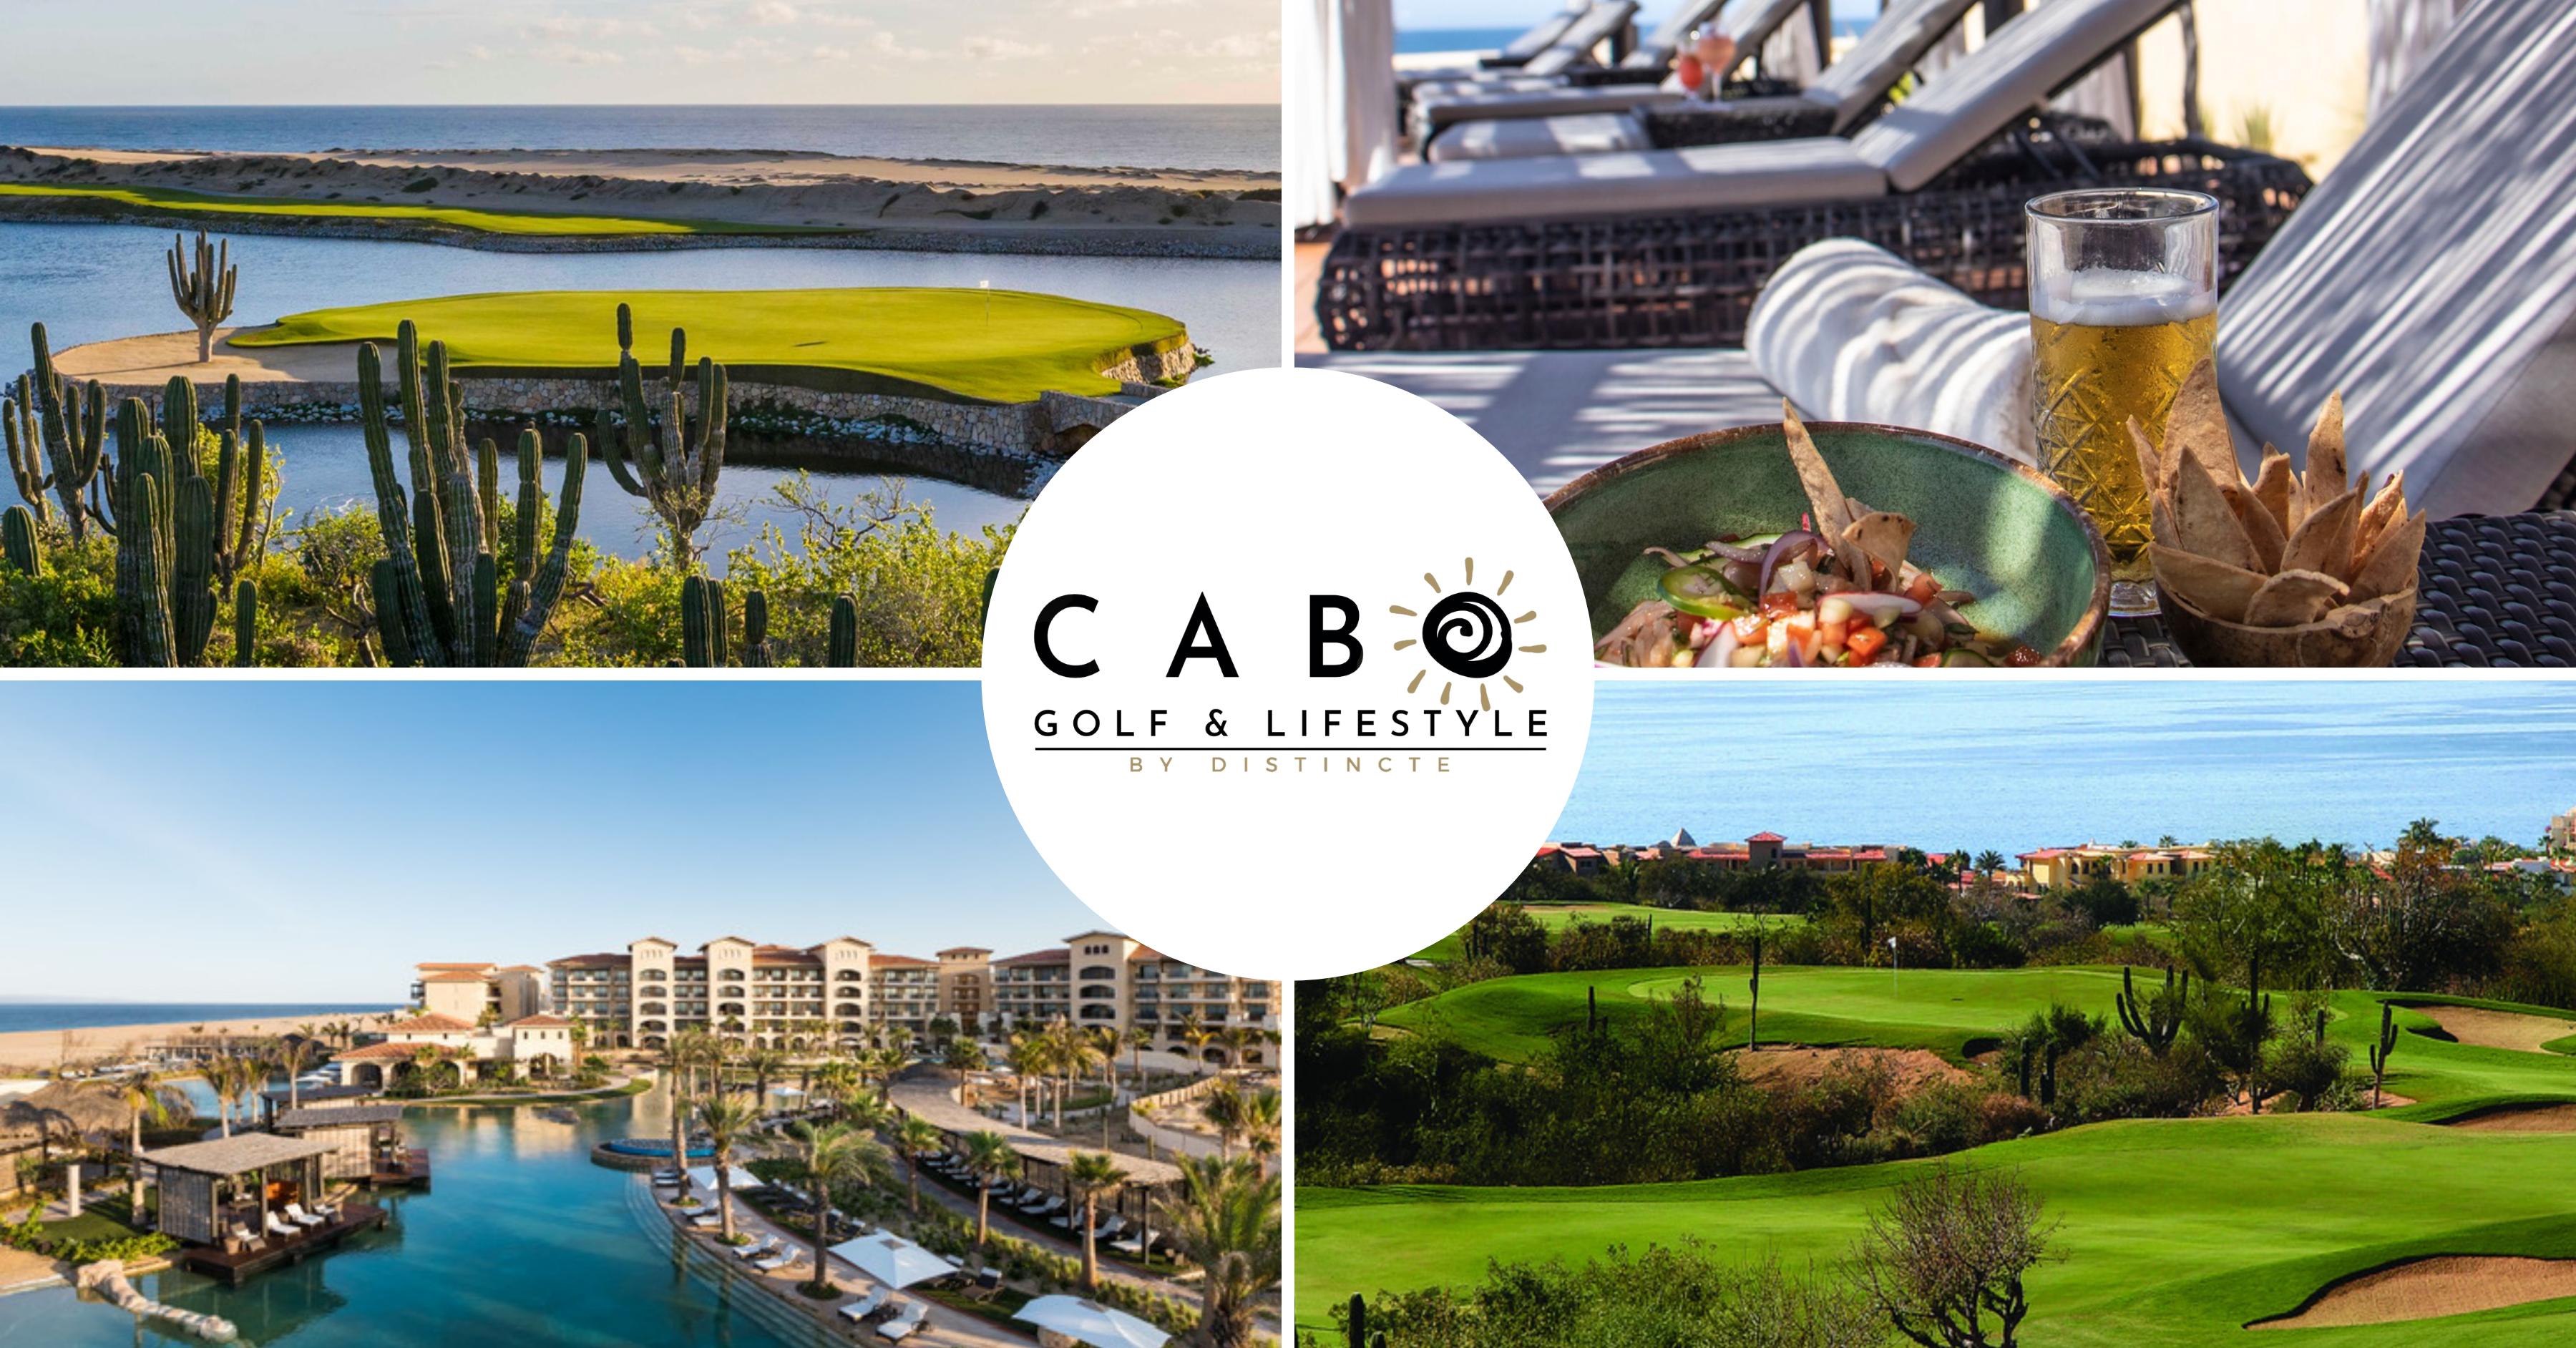 Enter to Win the $10,000 Los Cabos Golf Getaway Sweepstakes